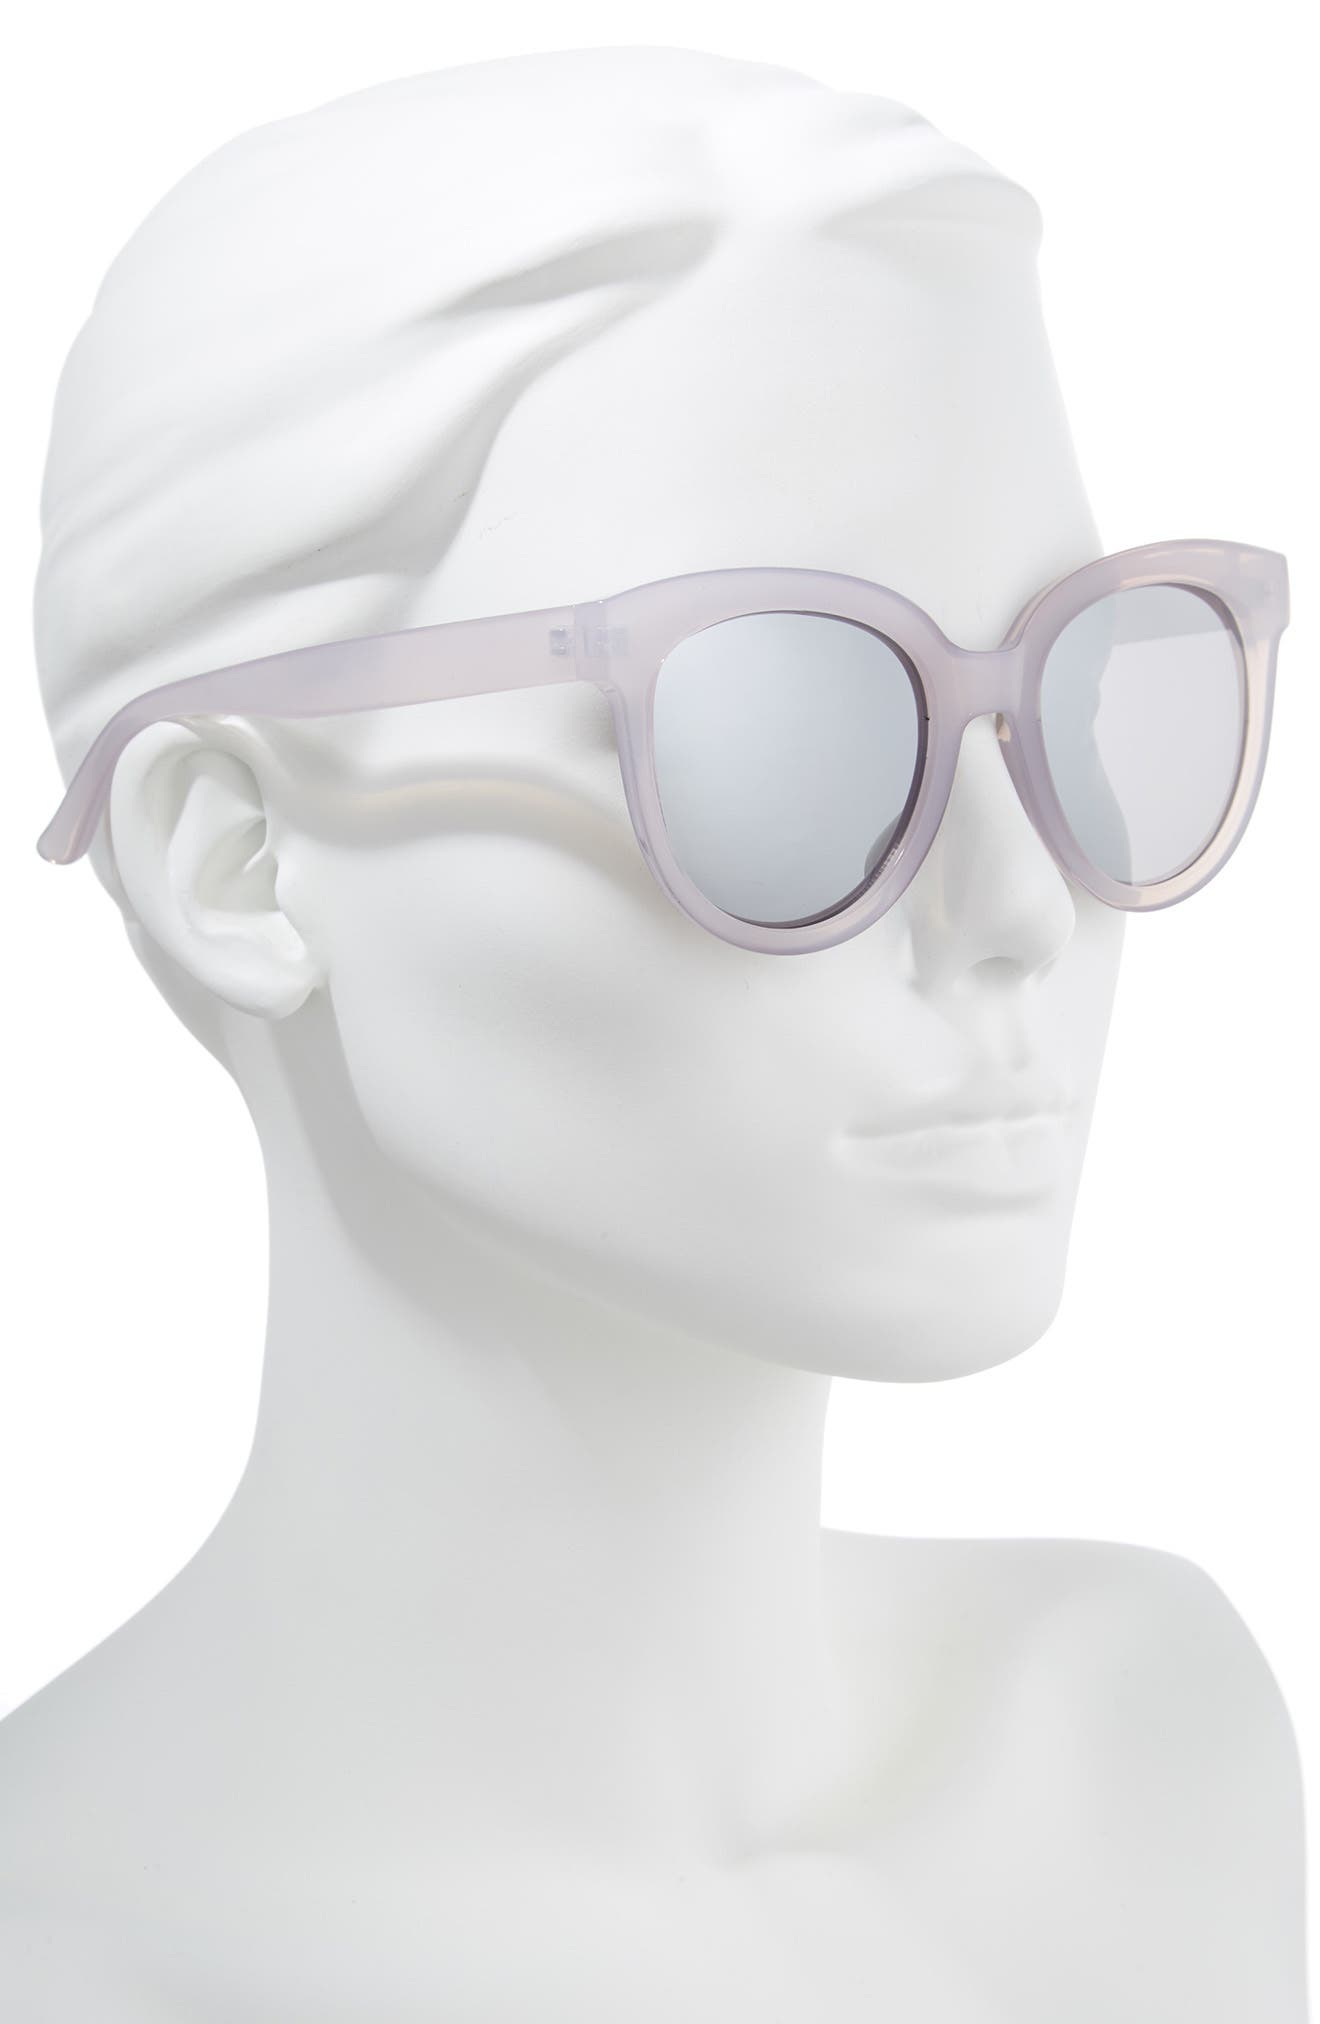 53mm Frosted Cat Eye Sunglasses,                             Alternate thumbnail 2, color,                             050